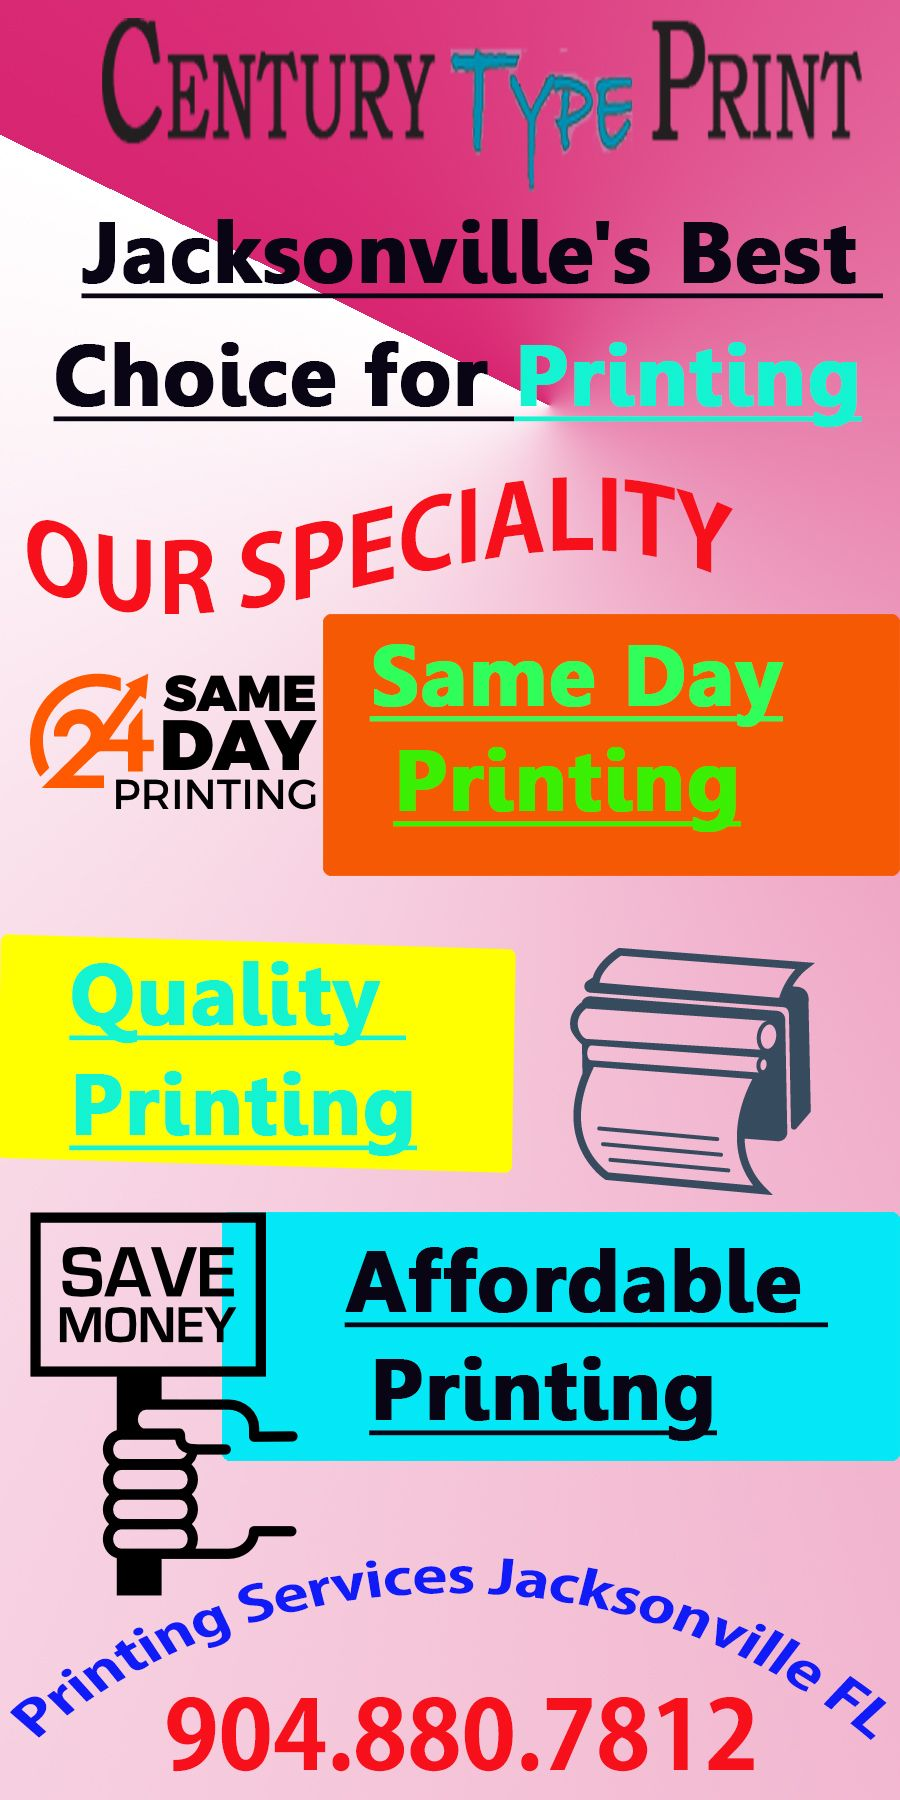 Century type print is an on demand printing company in jacksonville 3c42bdd2d4ddf8dc2d19370b1e9343adg reheart Choice Image